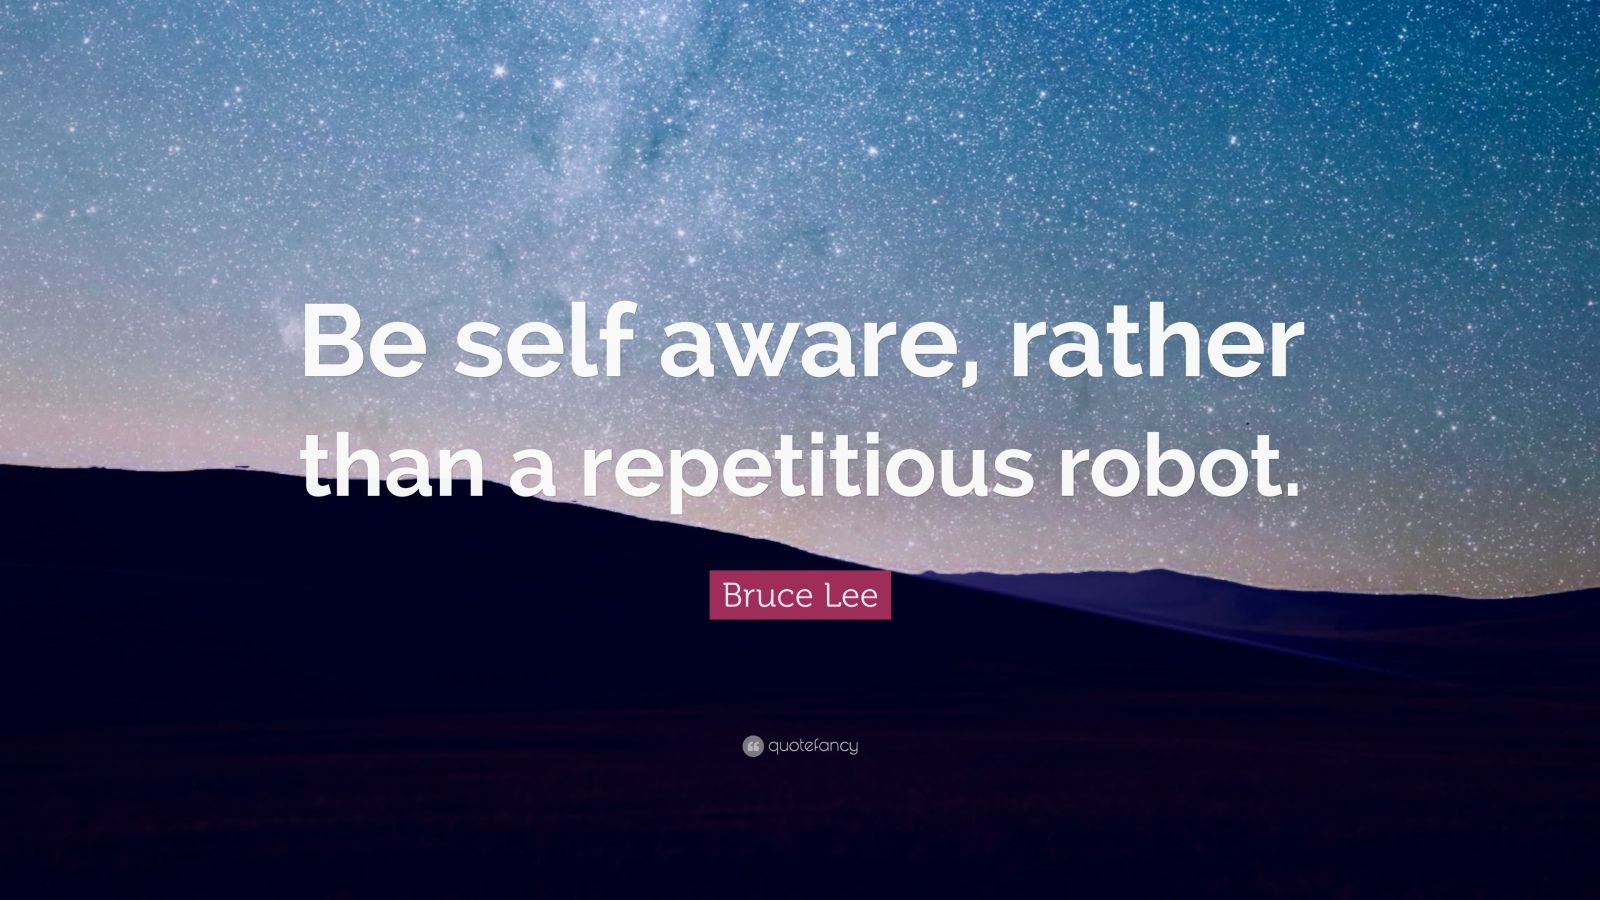 Bruce Lee Quotes About Self